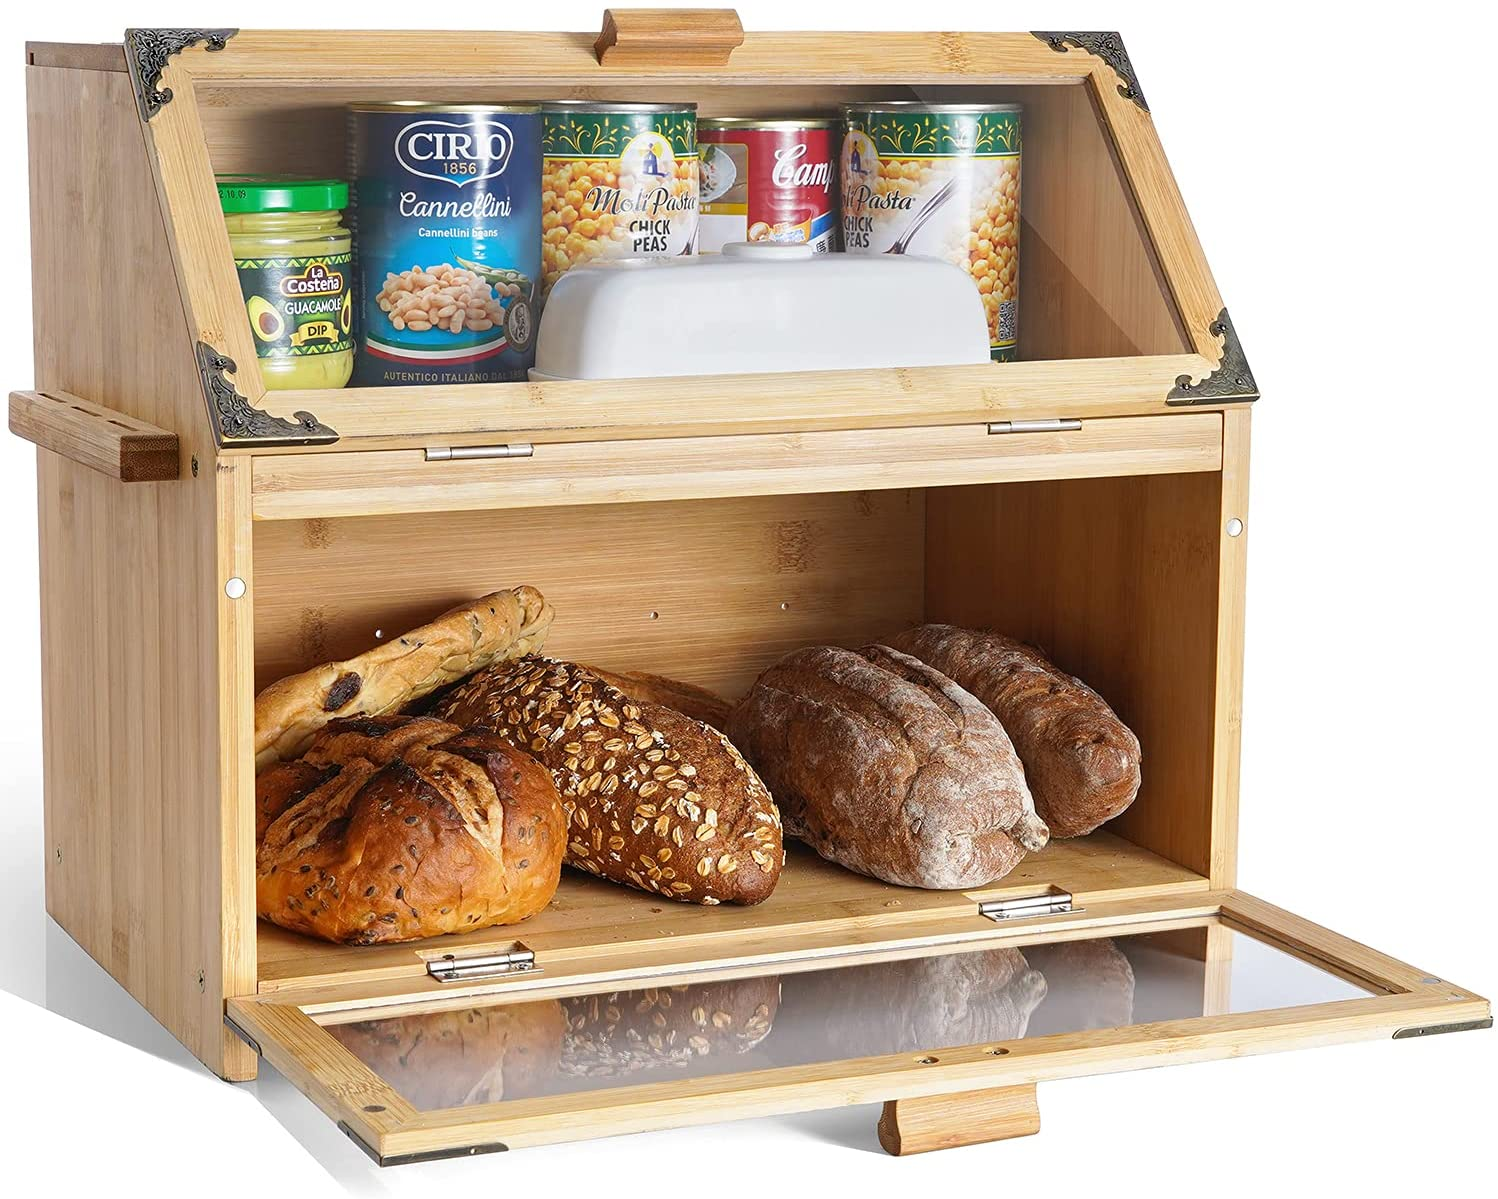 MIXC Bread Box for Kitchen Countertop, Bamboo Double Layers Large Bread Boxes, Plastic Panels Food Storage Box for Kitchen Counter Decor